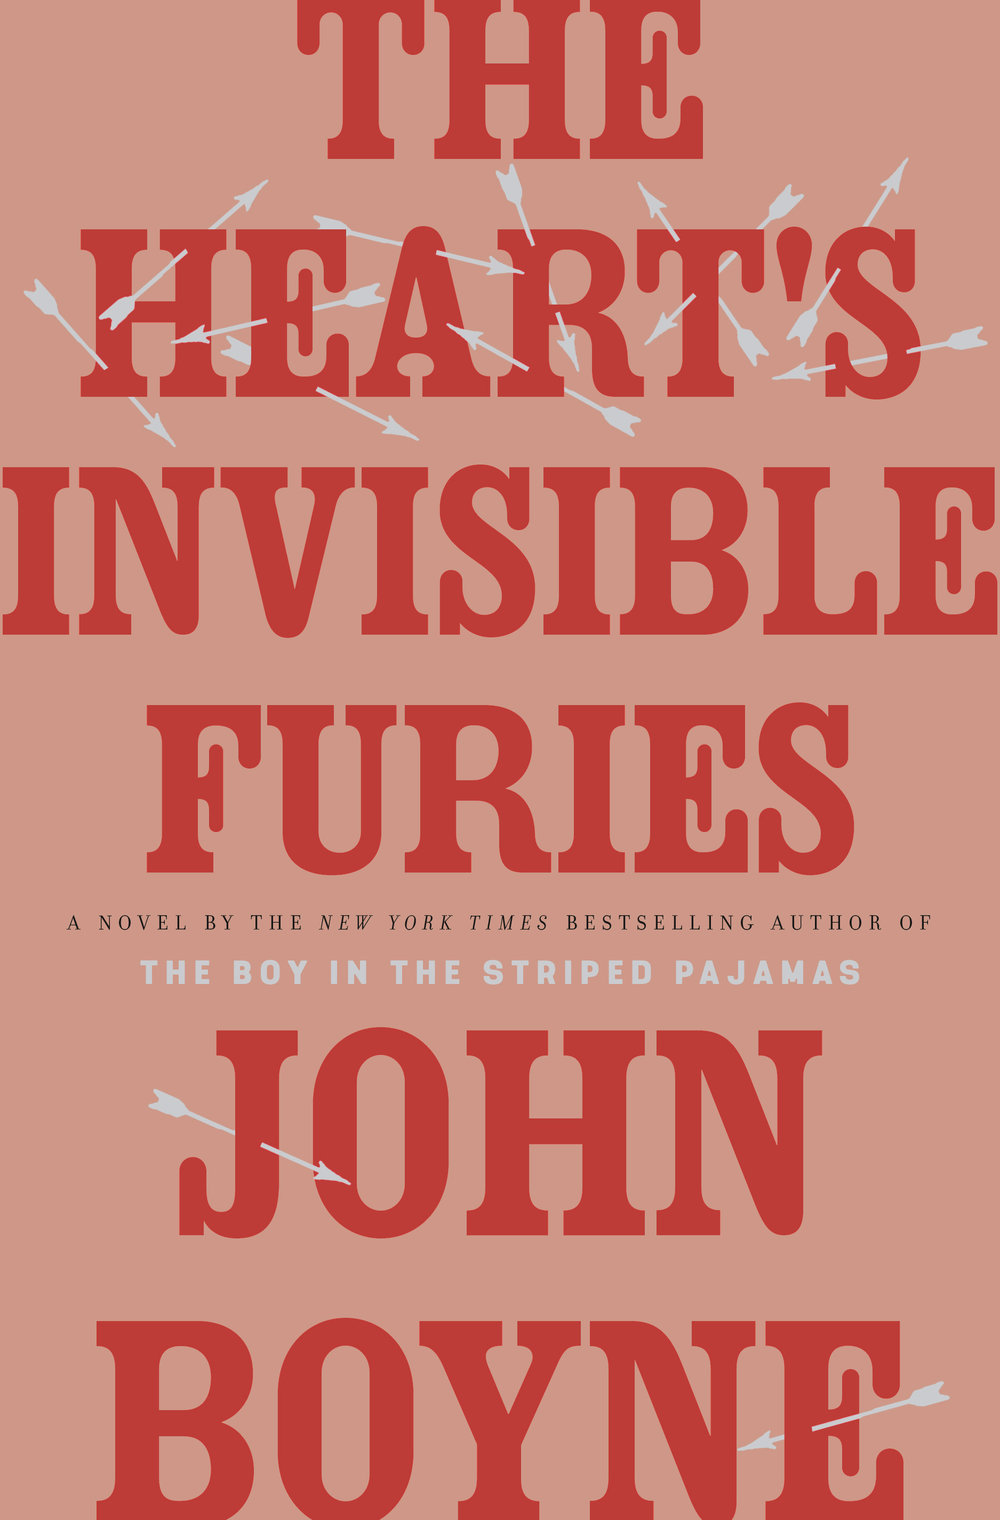 31 The Heart's Invisible Furies.jpg